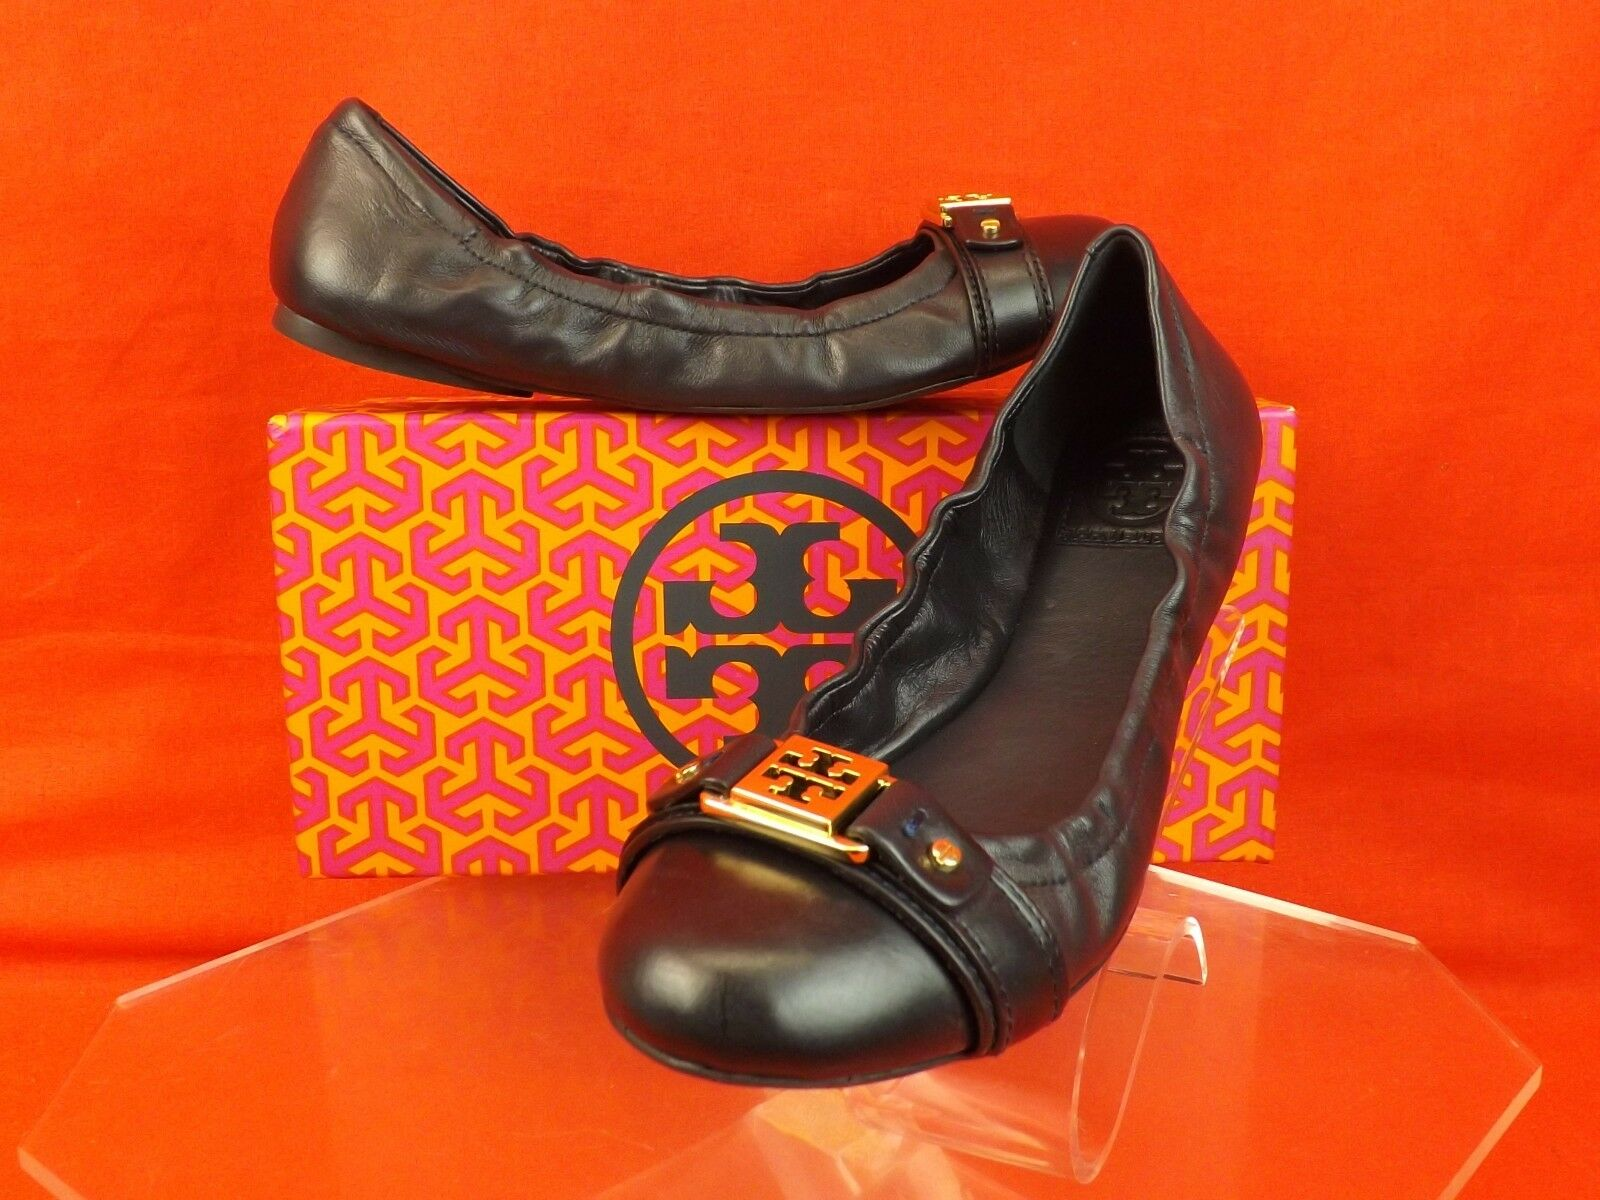 NIB TORY BURCH NAVY LEATHER AMBROSE GOLD REVA CAP TOE BALLET FLATS 7.5